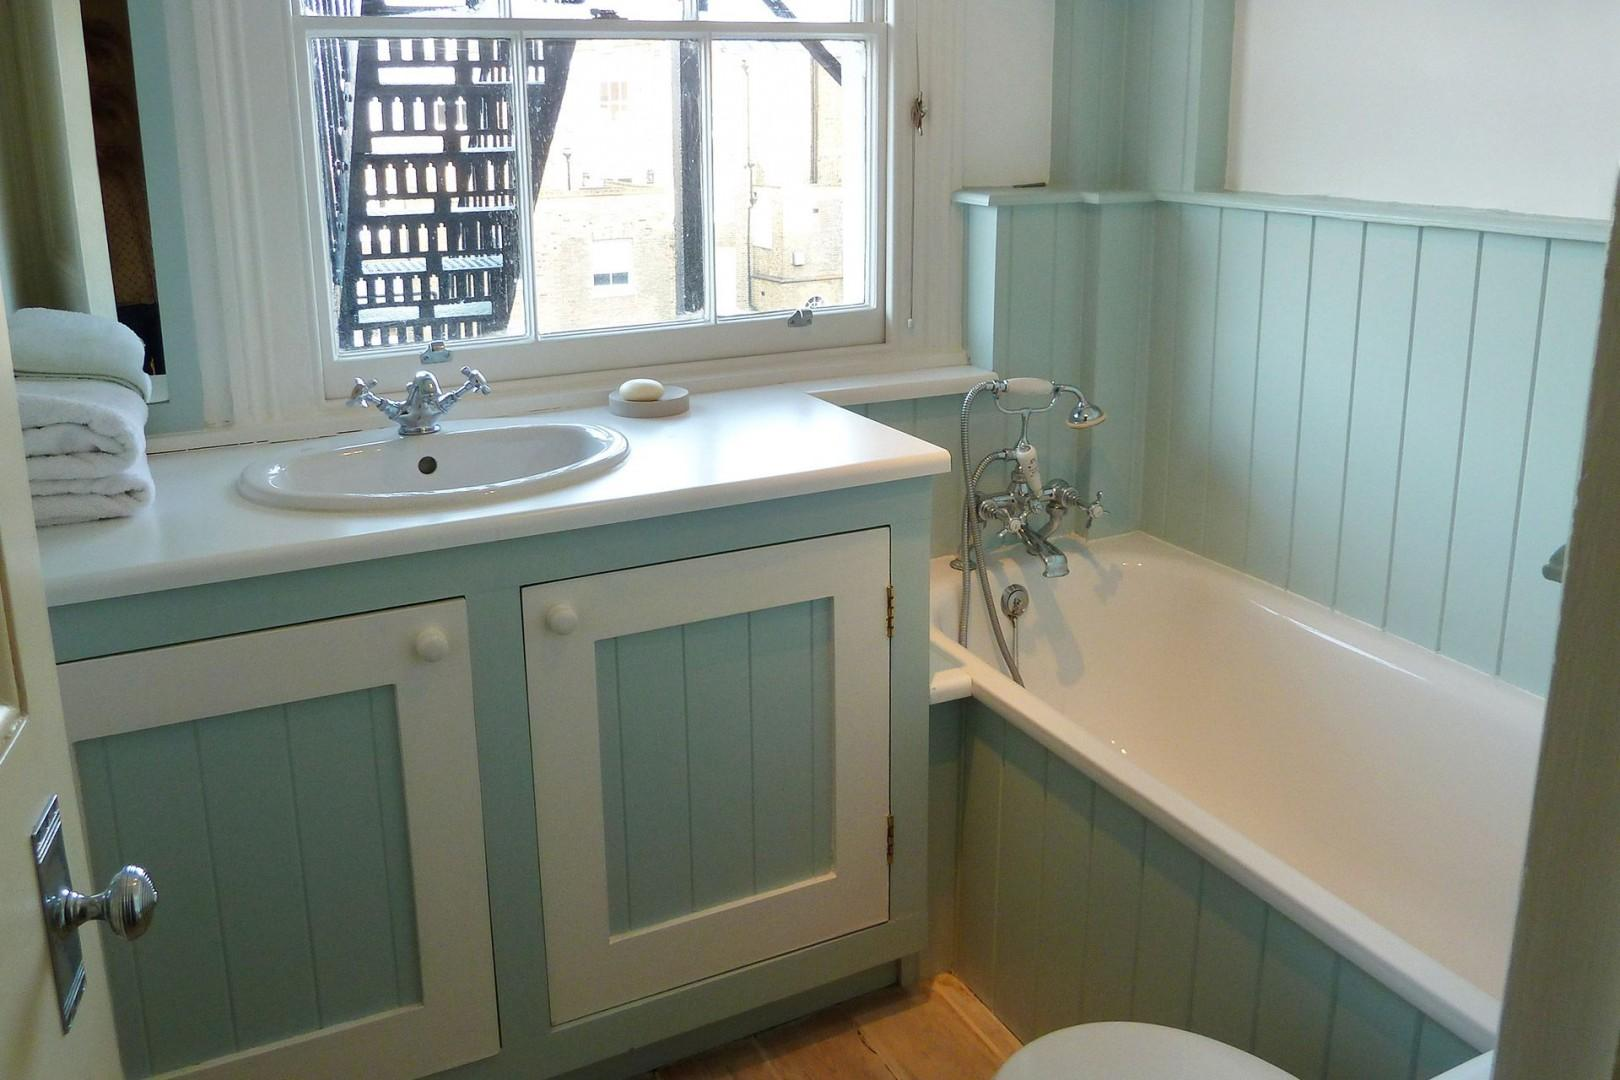 The third bathroom with bathtub, sink and toilet